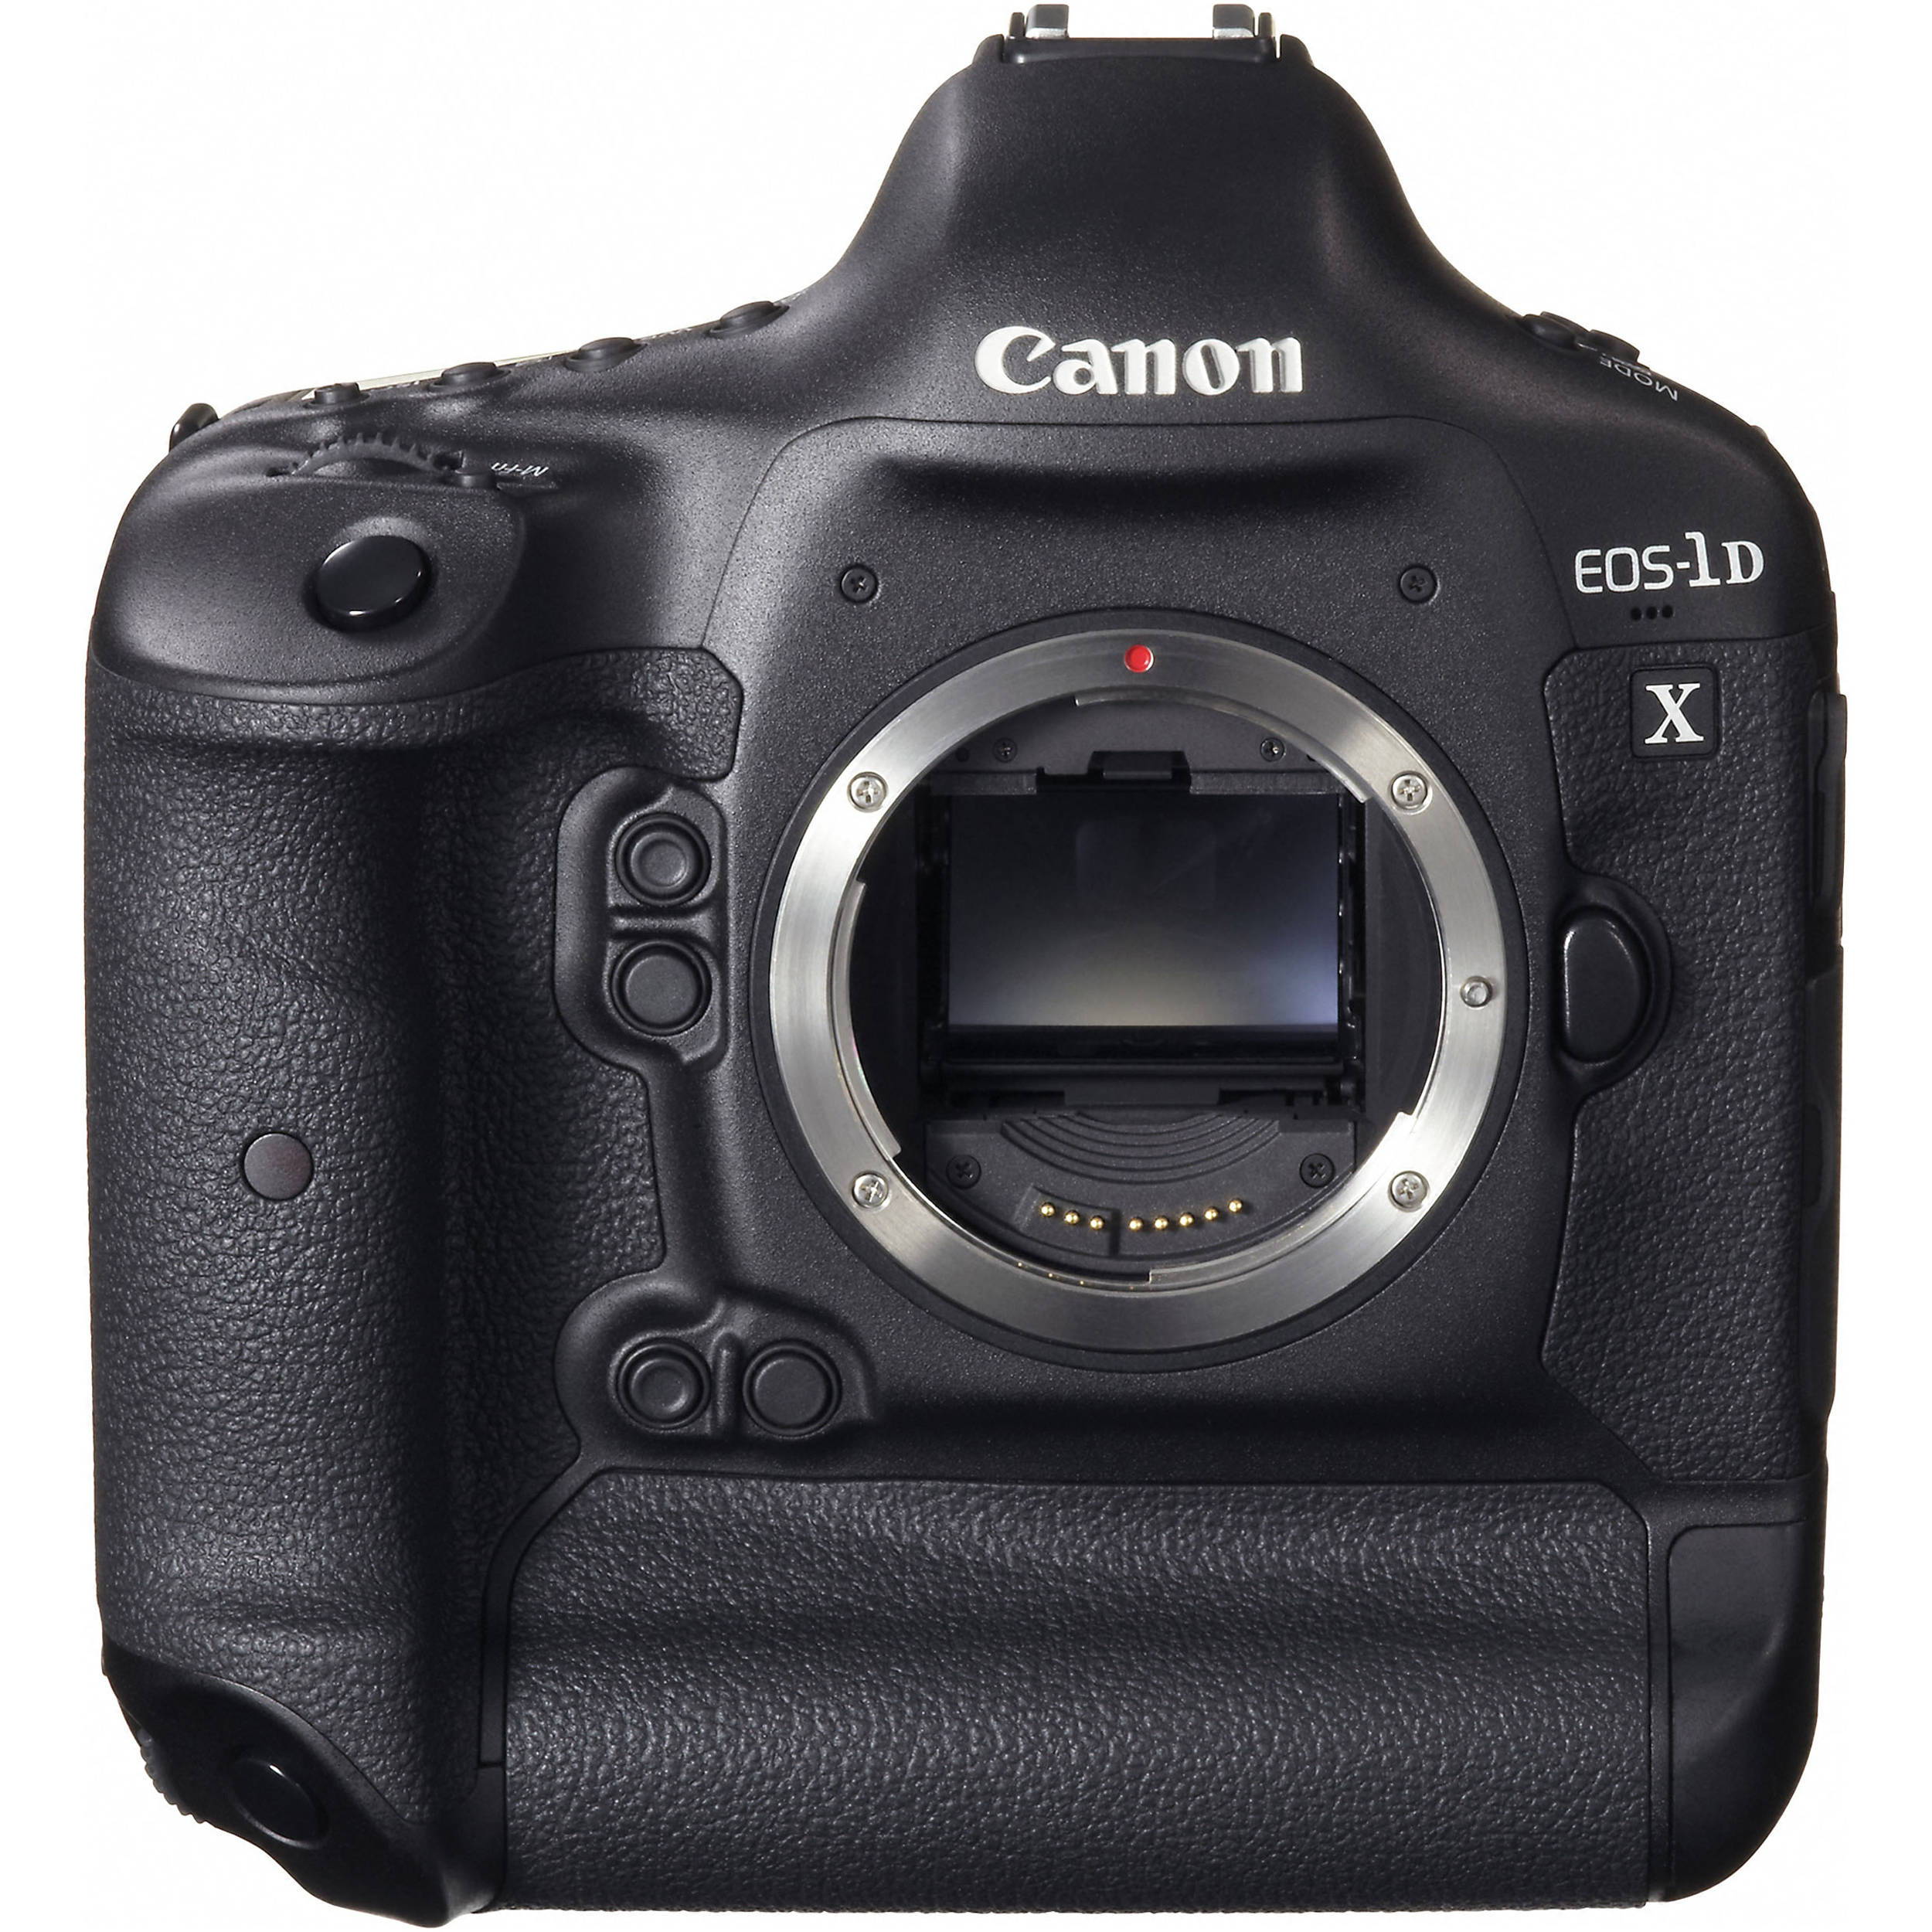 Camera Canon Dslr Camera Range Explained canon eos 1d x dslr camera body only 5253b002 bh photo video only